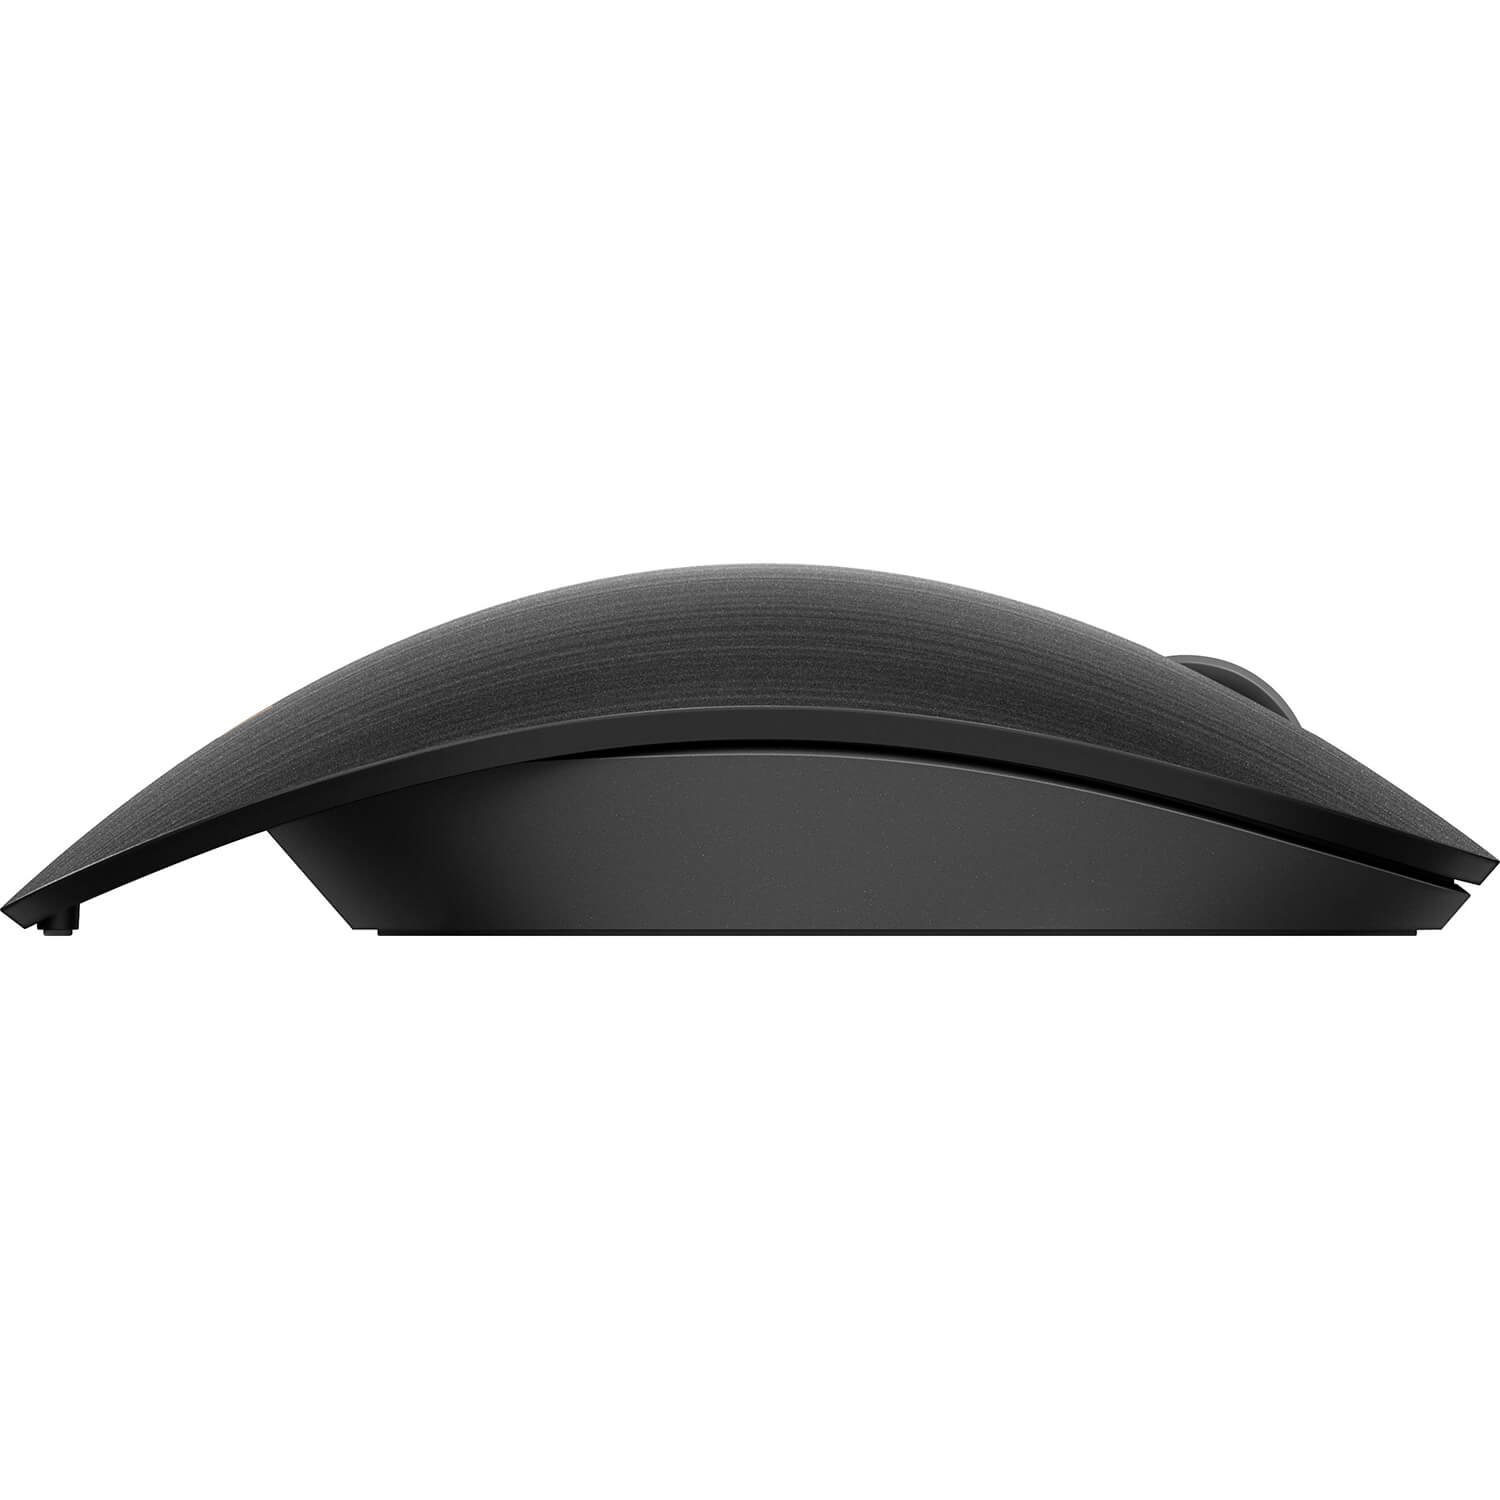 a7a9deffc7a Refurbished HP Spectre 510 3-Button Wireless Bluetooth Optical Scroll Mouse  1600 DPI - Black - Walmart.com